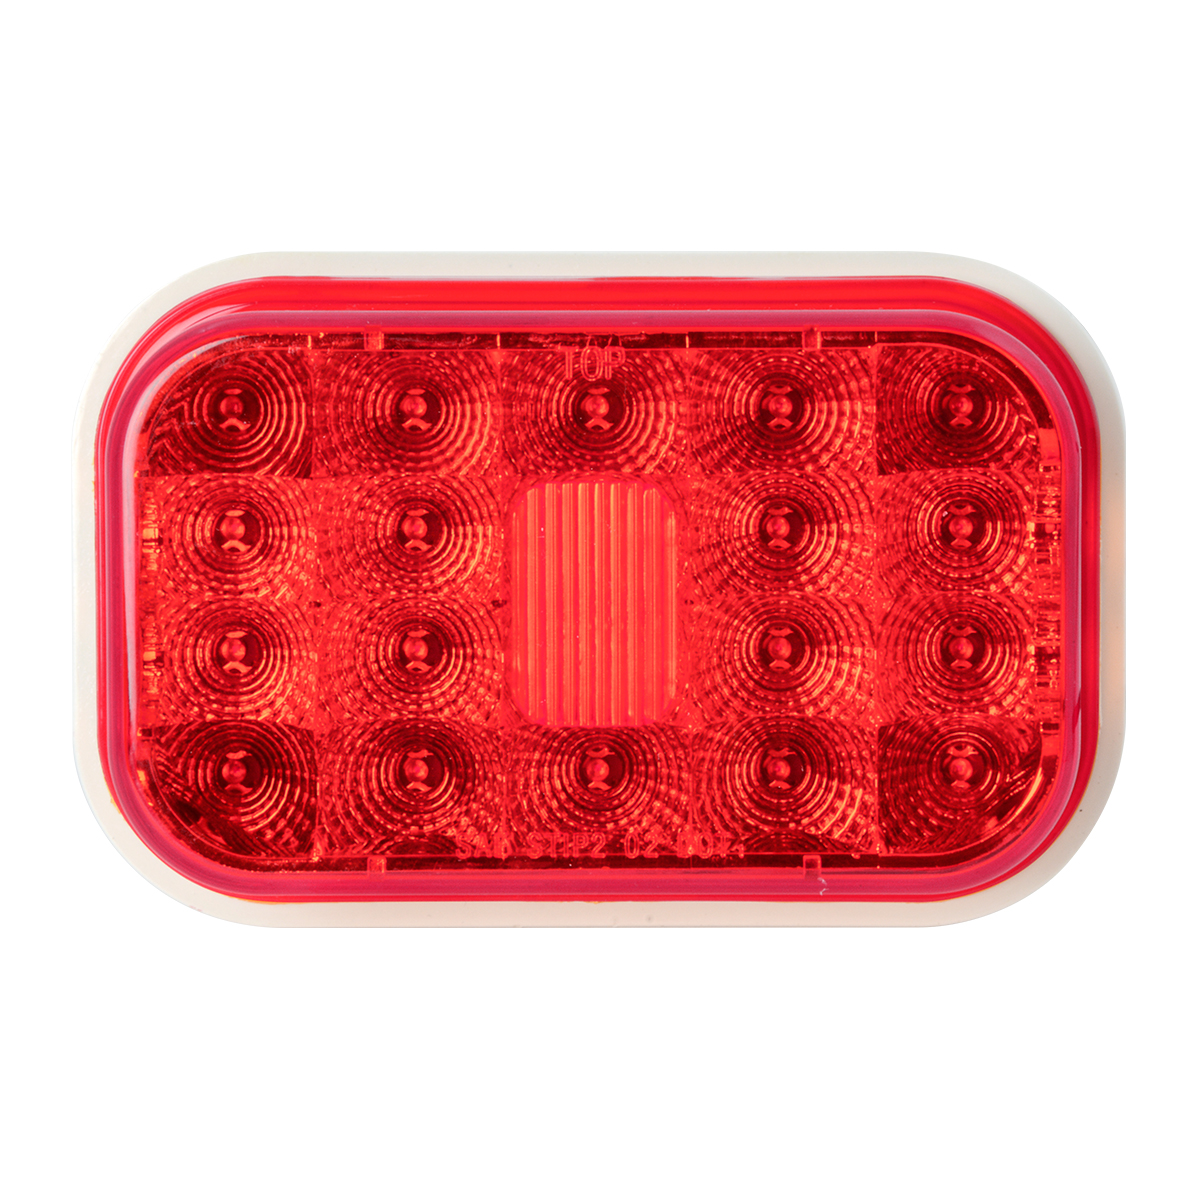 77463 High Profile Rectangular Spyder LED Light in Red/Red